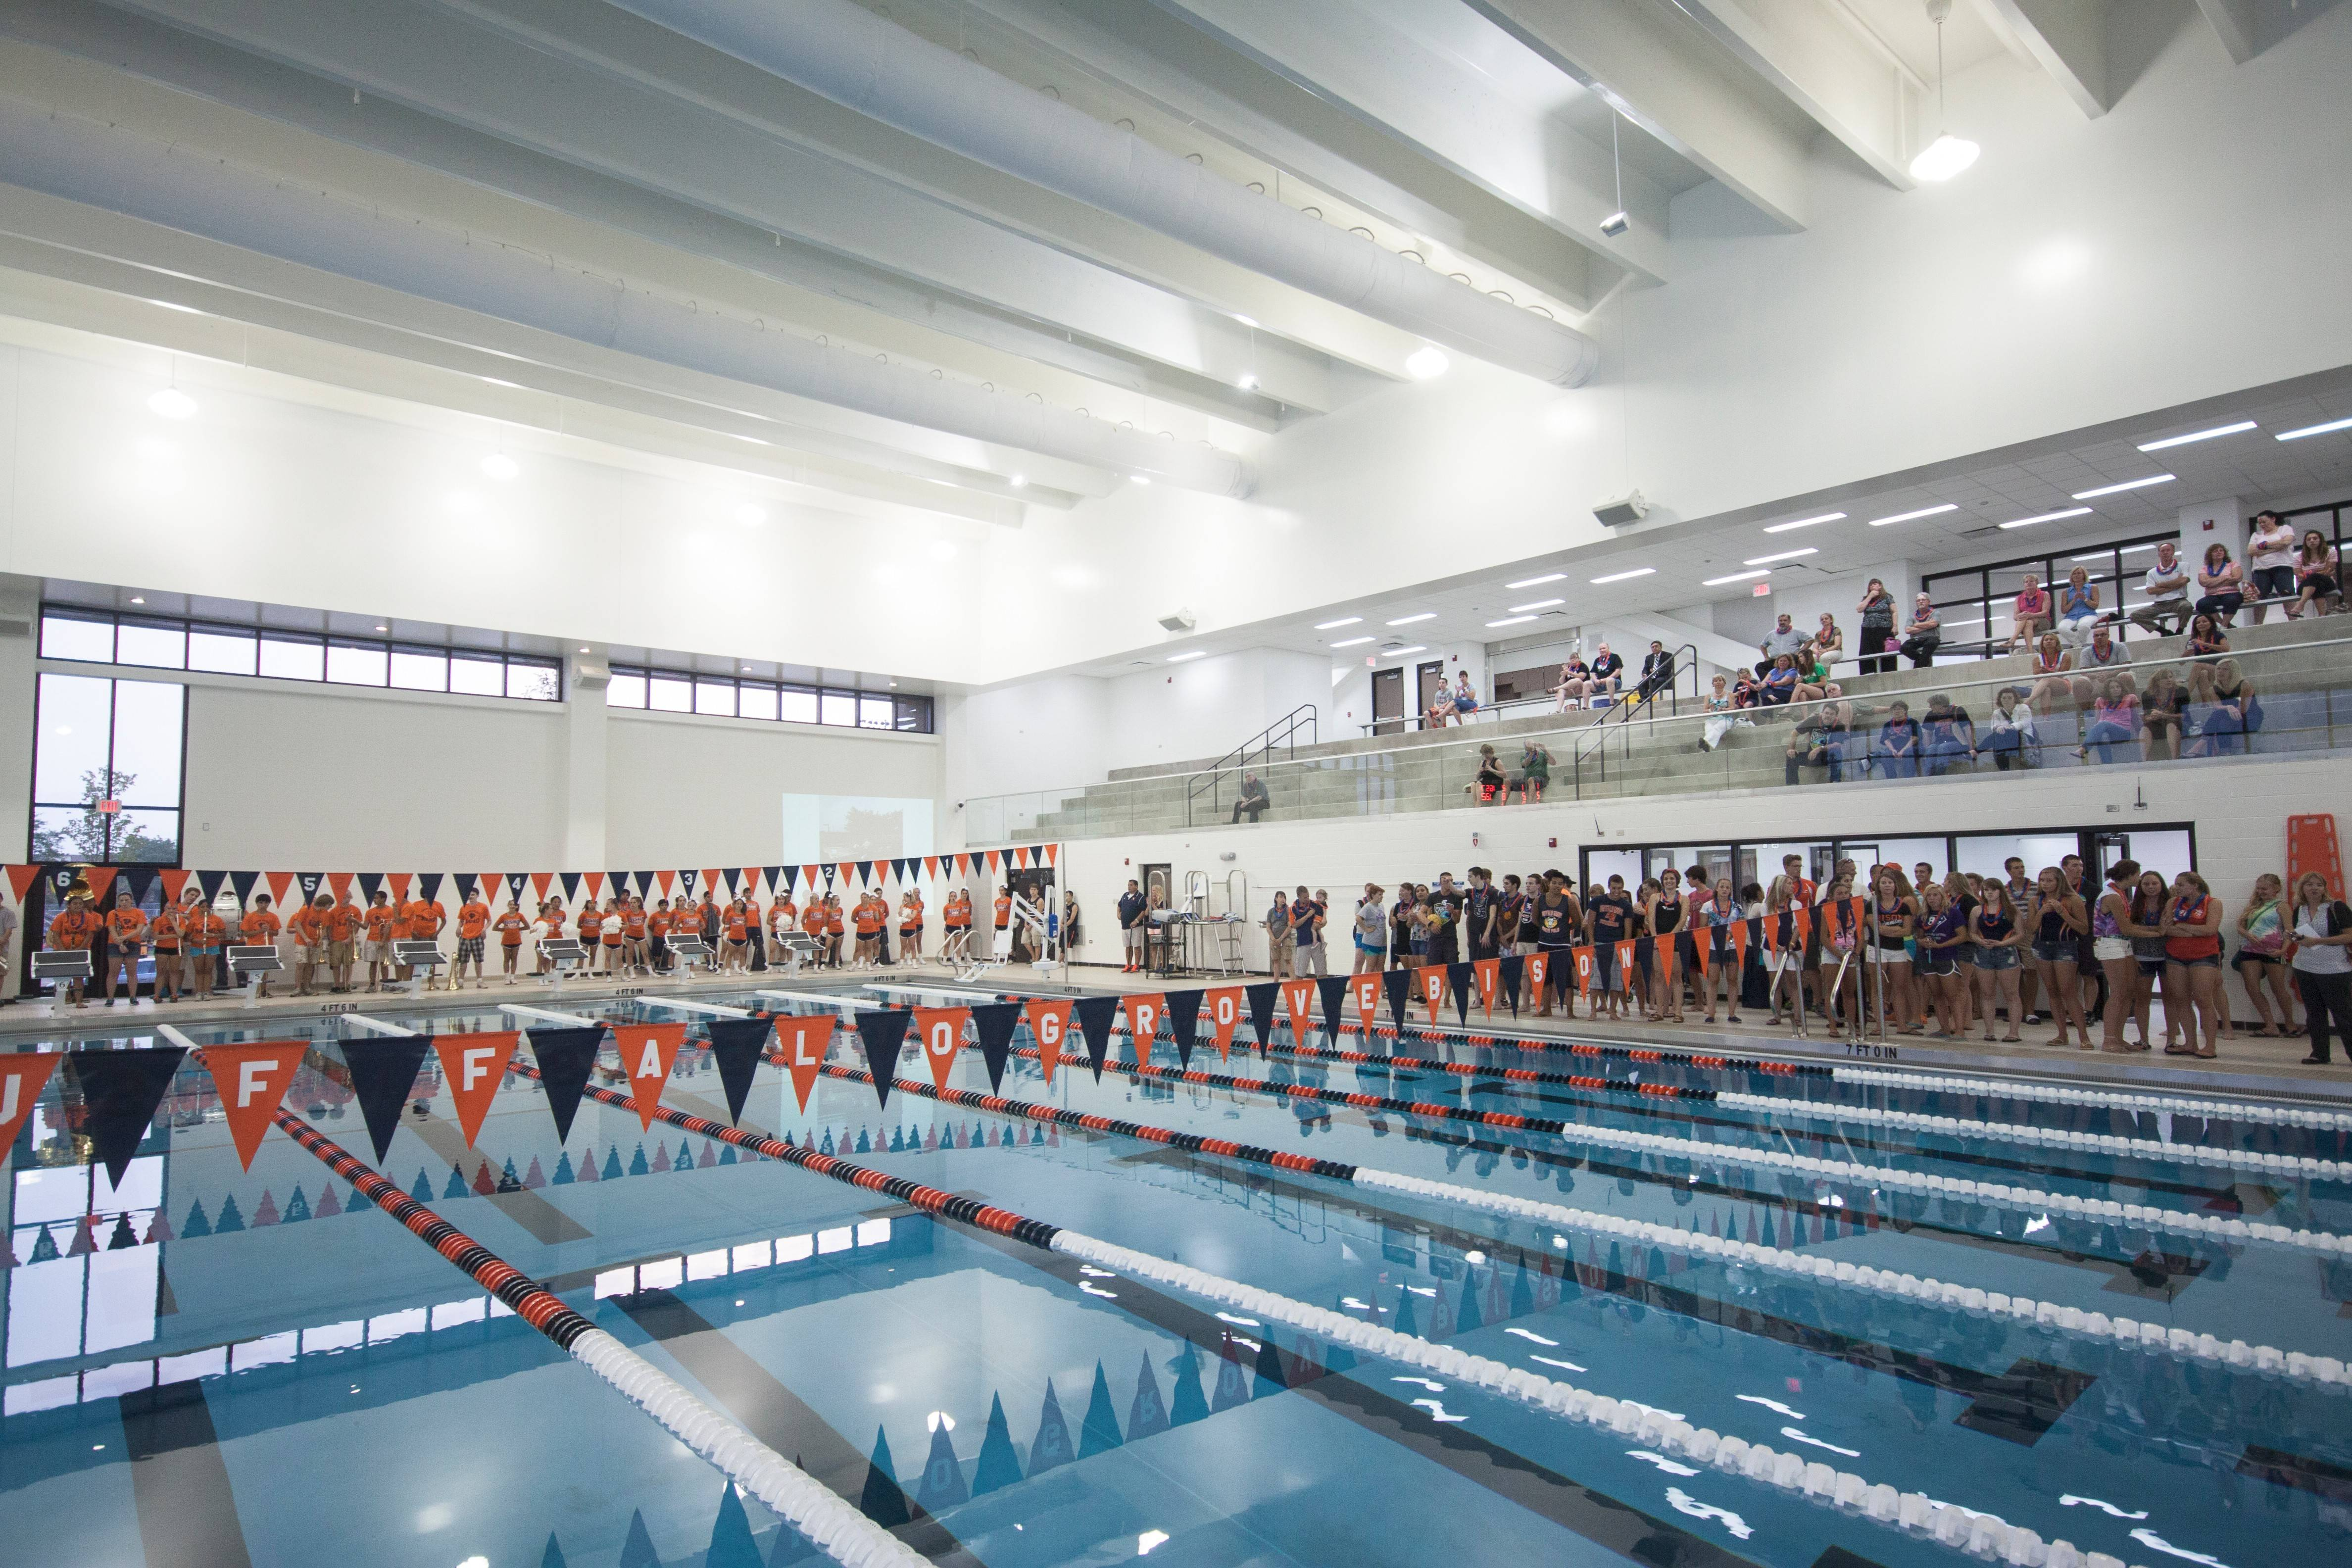 The newly renovated Buffalo Grove High School swimming pool is open for students and the community following a dedication ceremony on Aug. 11.